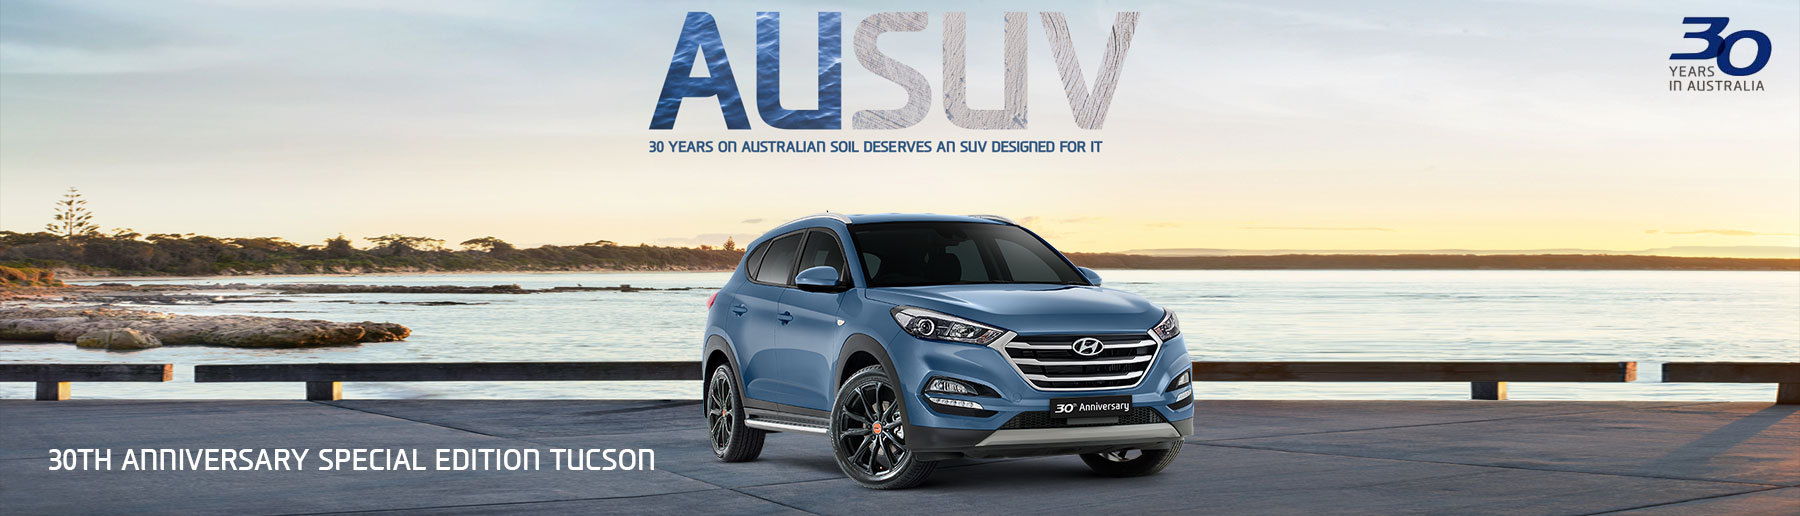 30th Anniversary Special Edition Tucson